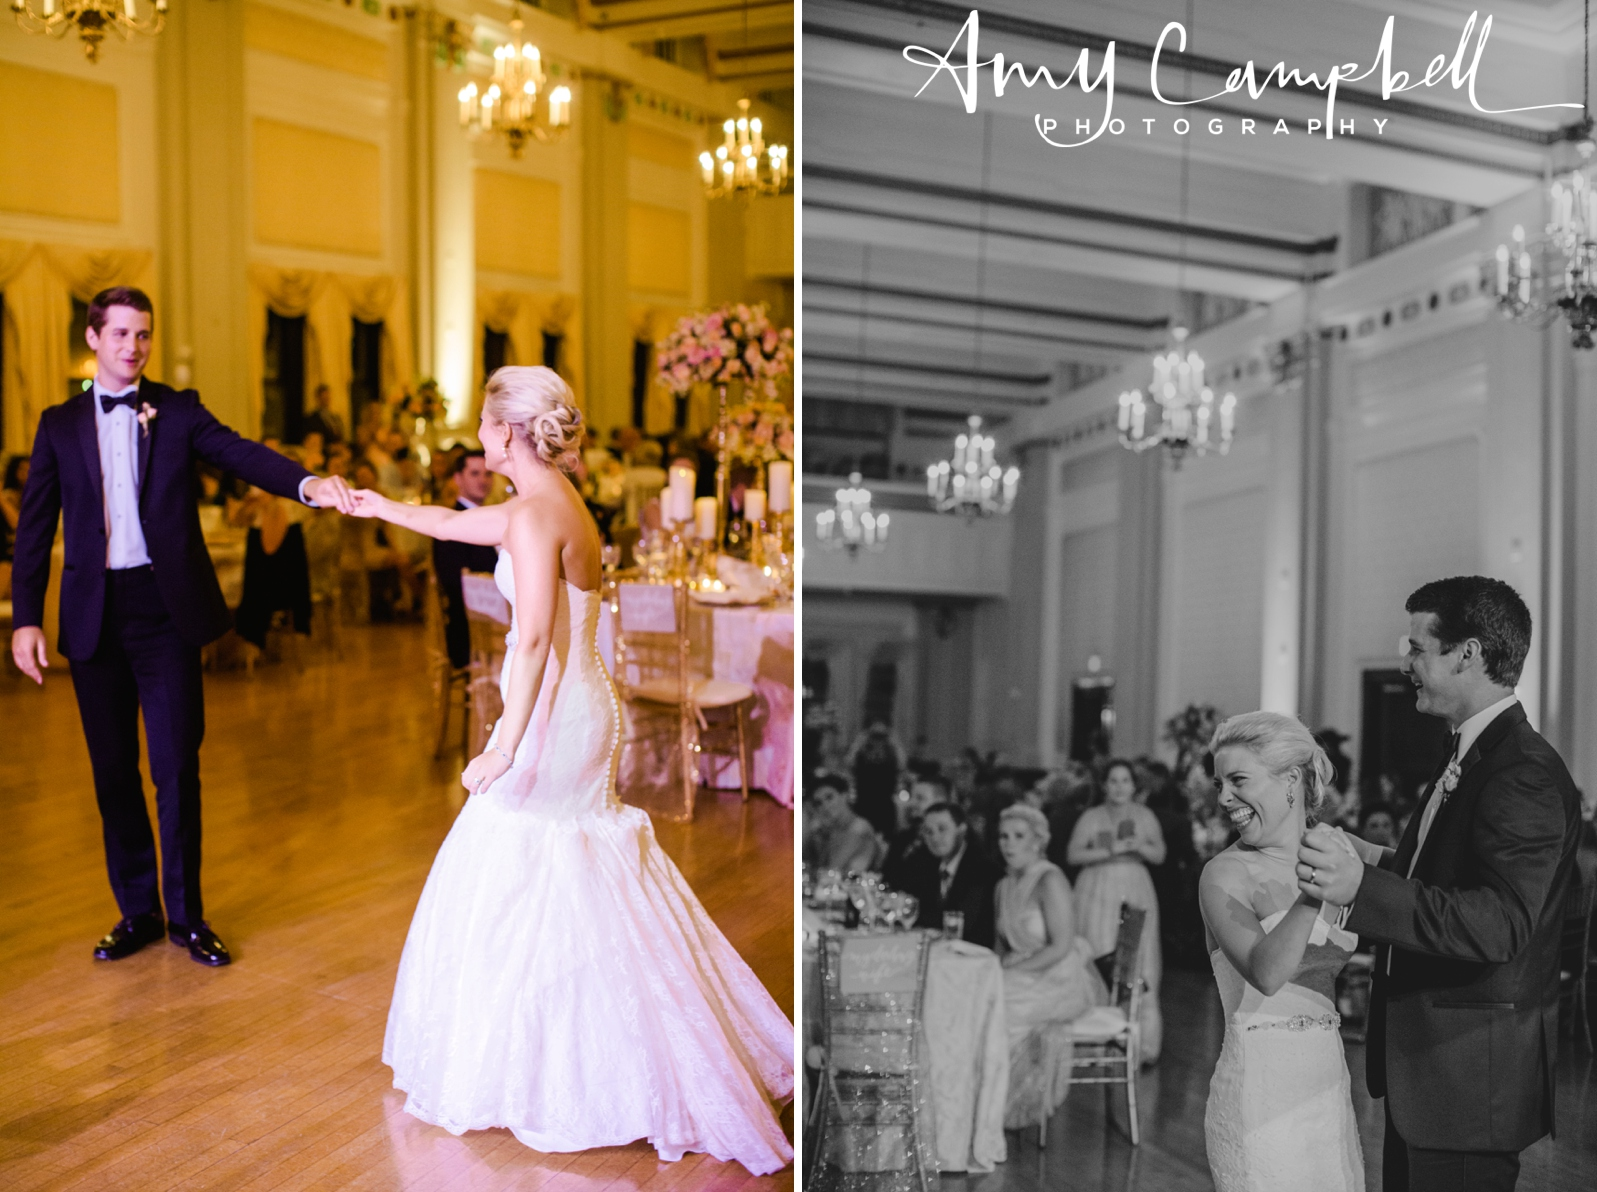 chelseamike_wedss_pics_amycampbellphotography_142.jpg